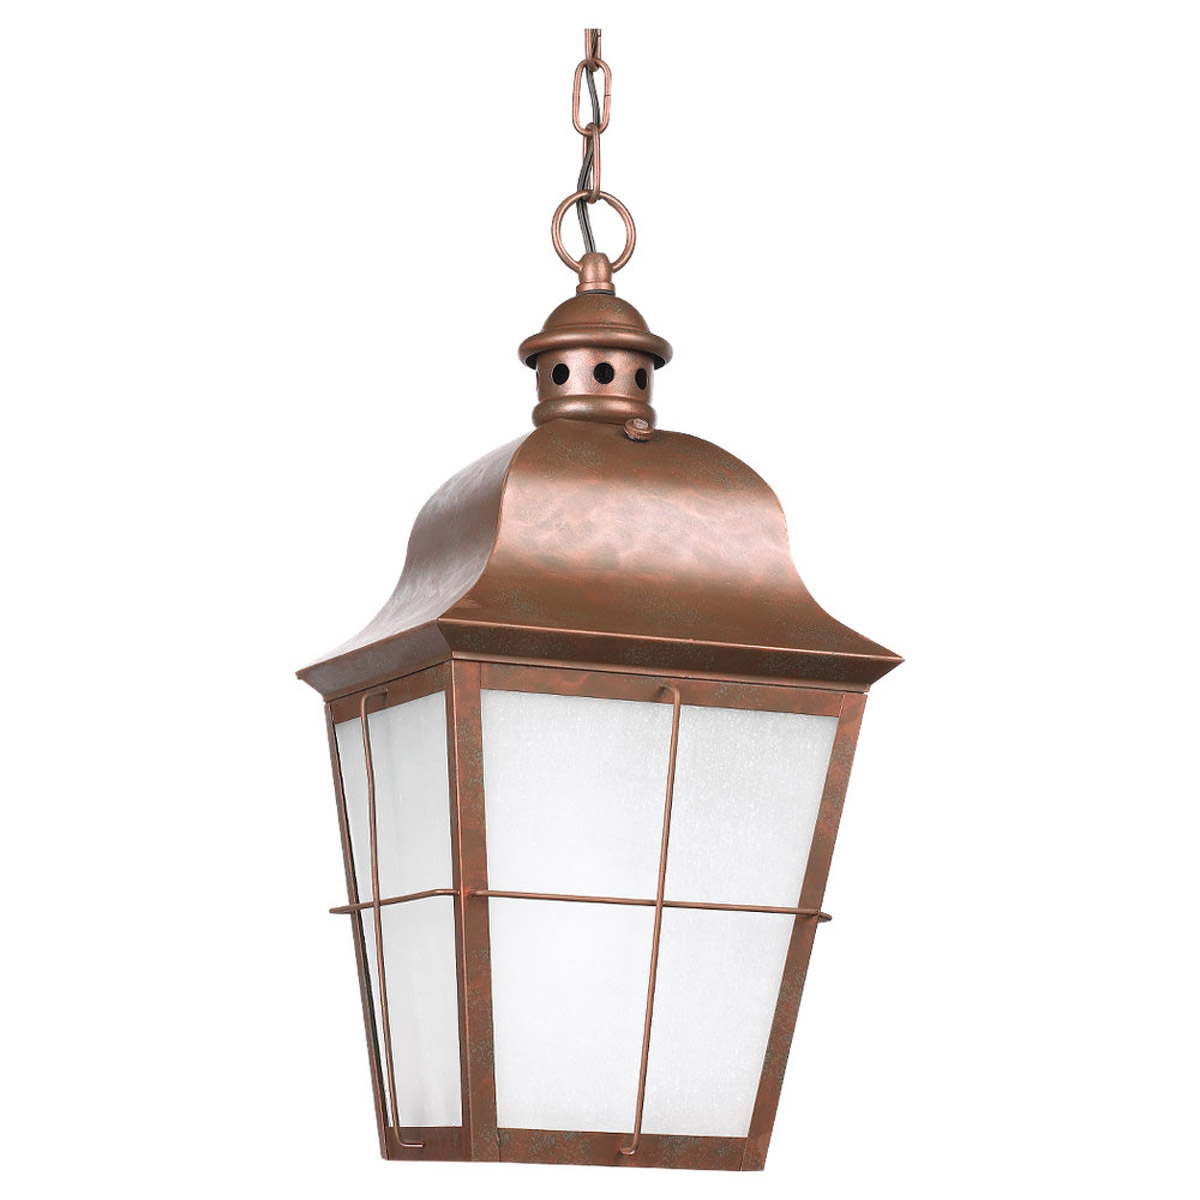 Sea Gull Lighting Chatham 1 Light Outdoor Pendant in Weathered Copper 69272PBLE-44 photo